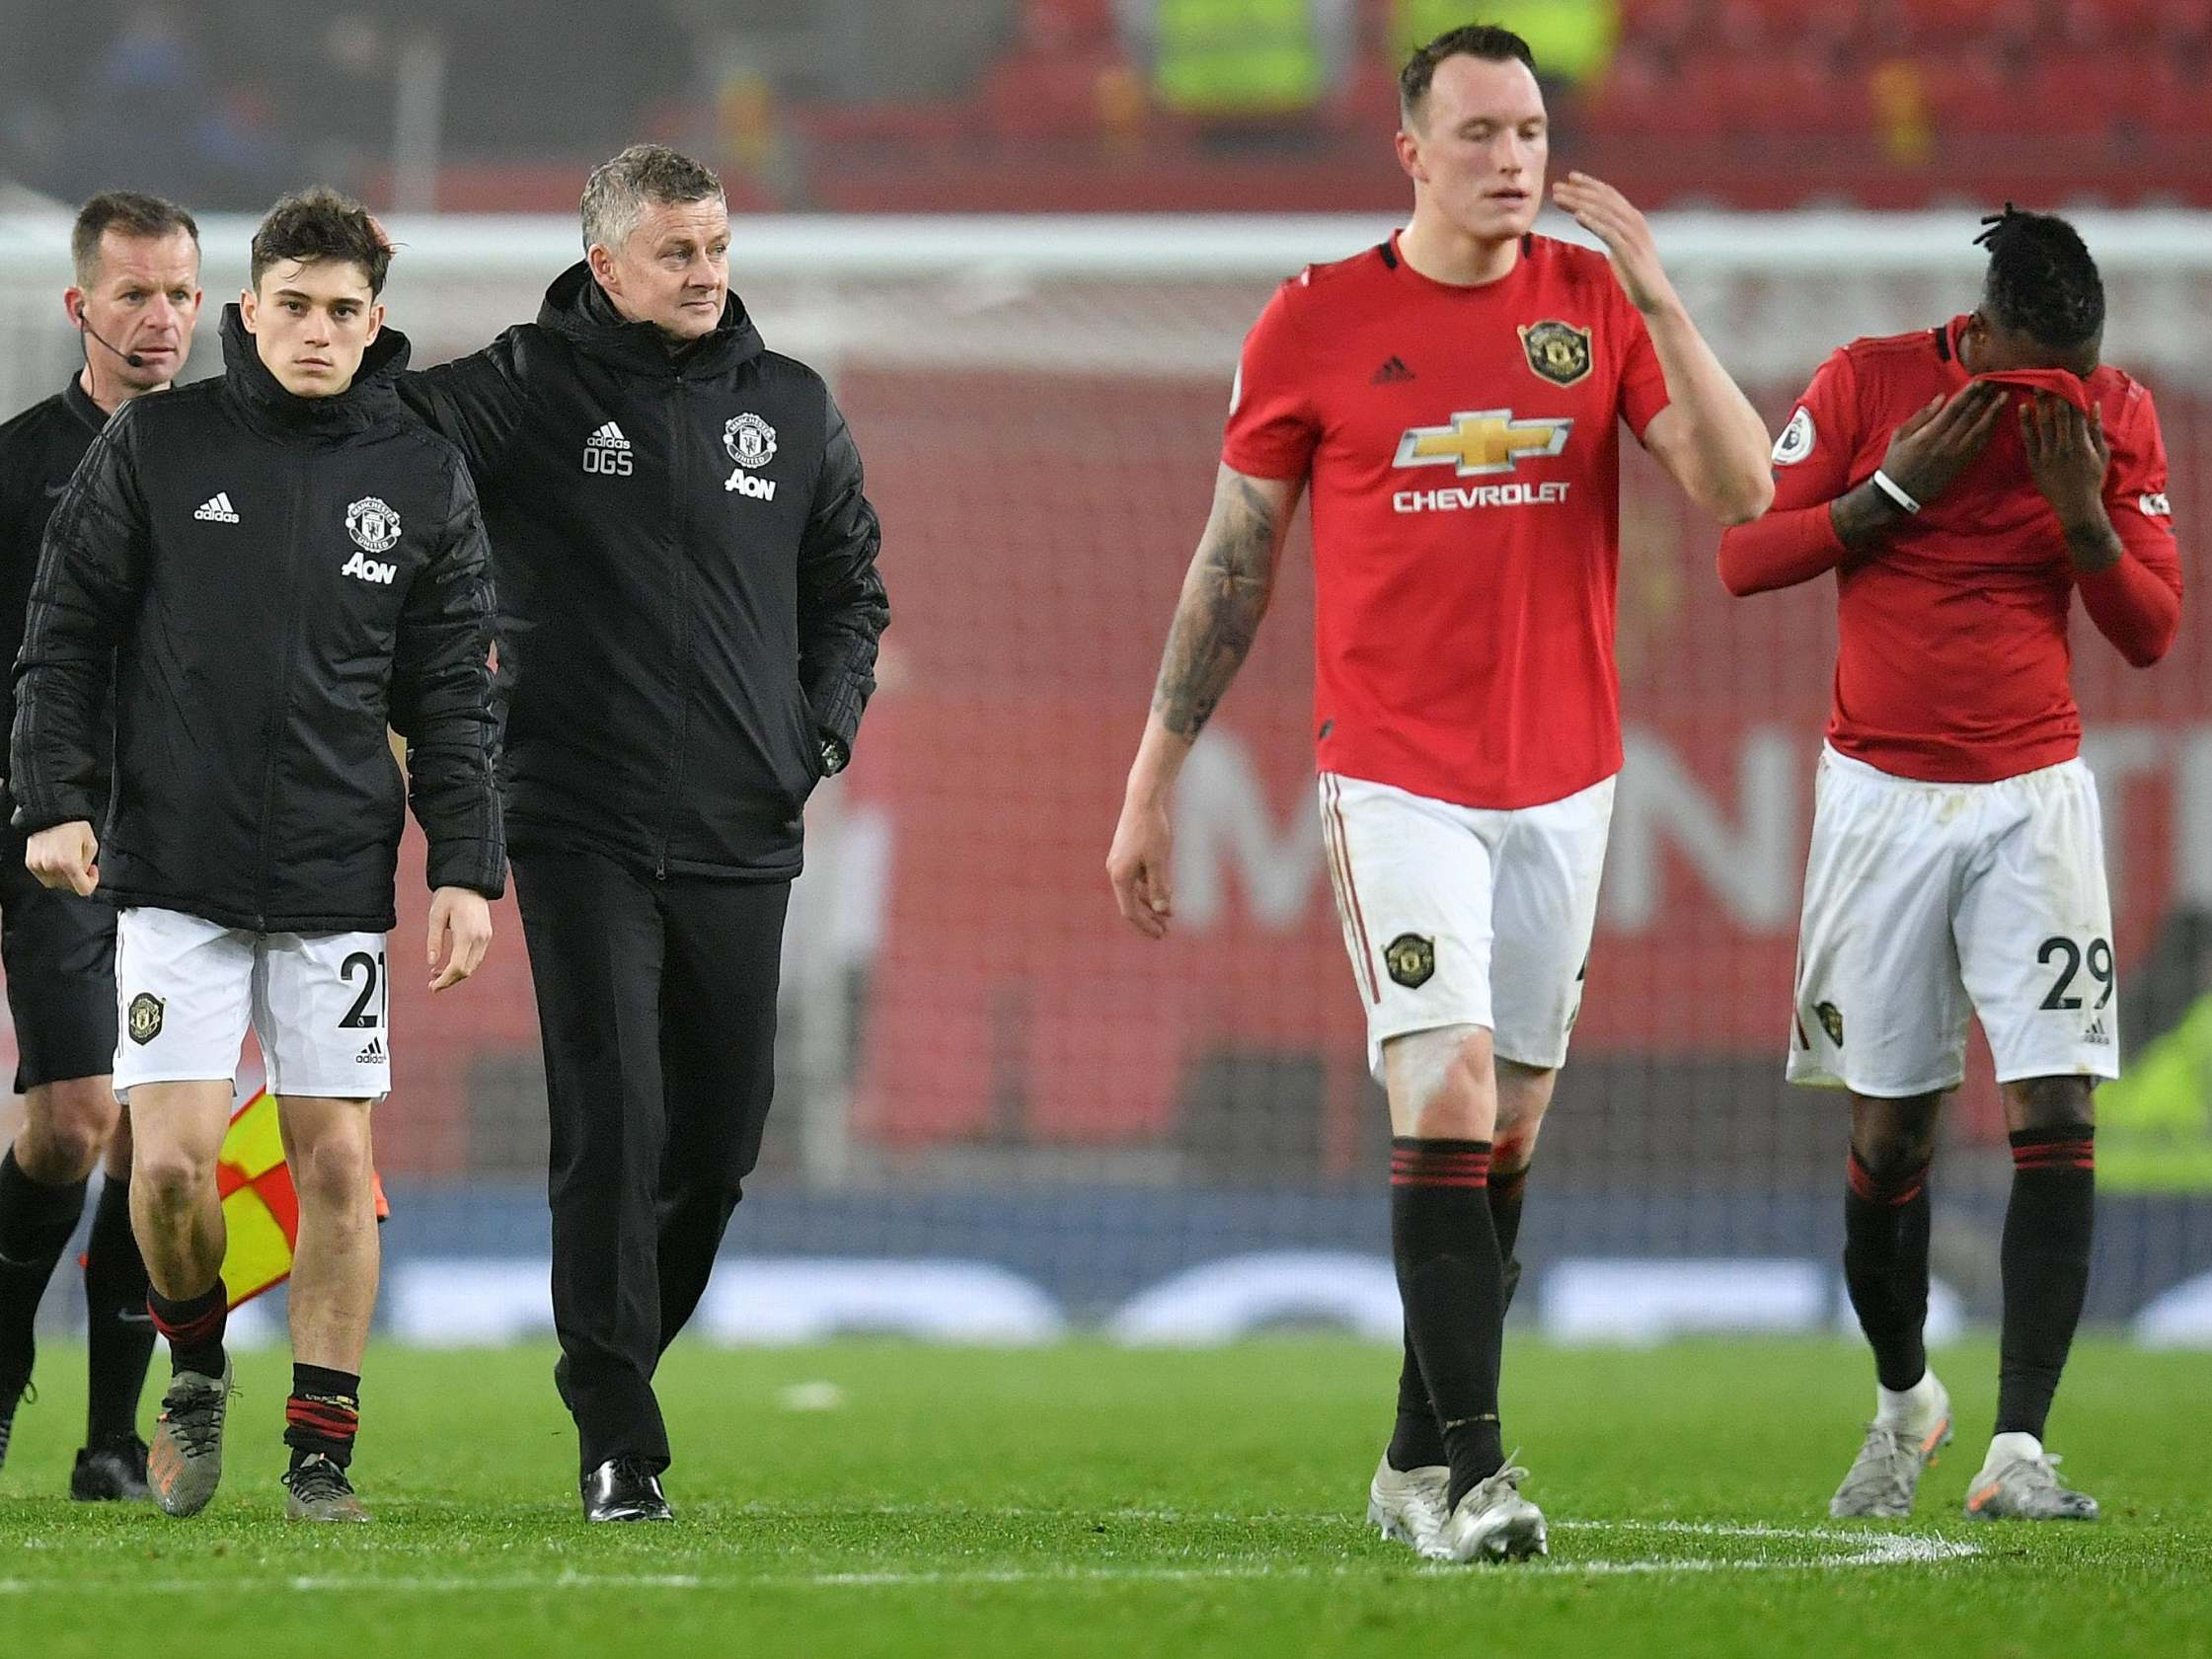 Manchester United: Rio Ferdinand calls latest defeat 'an embarrassment'